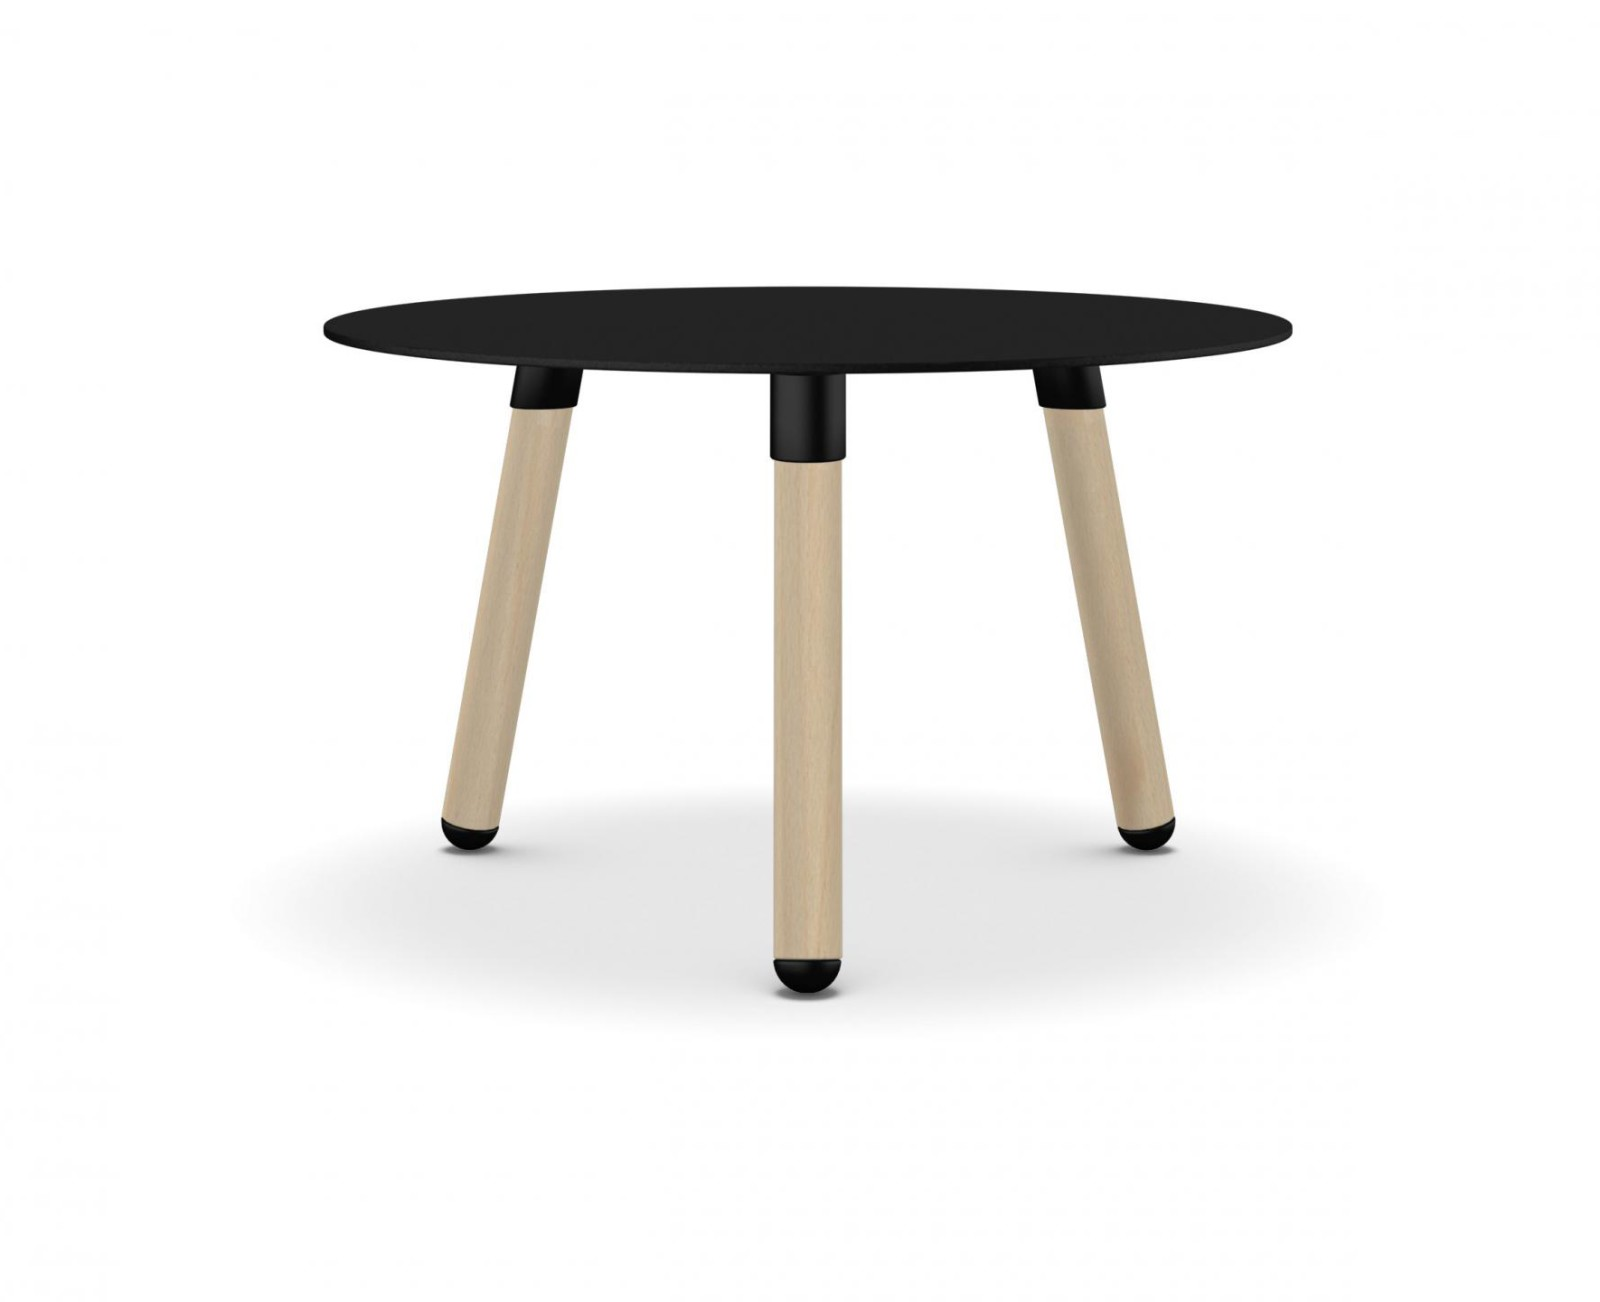 BCN Round Dining Table - 3 Legs Solid beech, Black laminate, 33cm